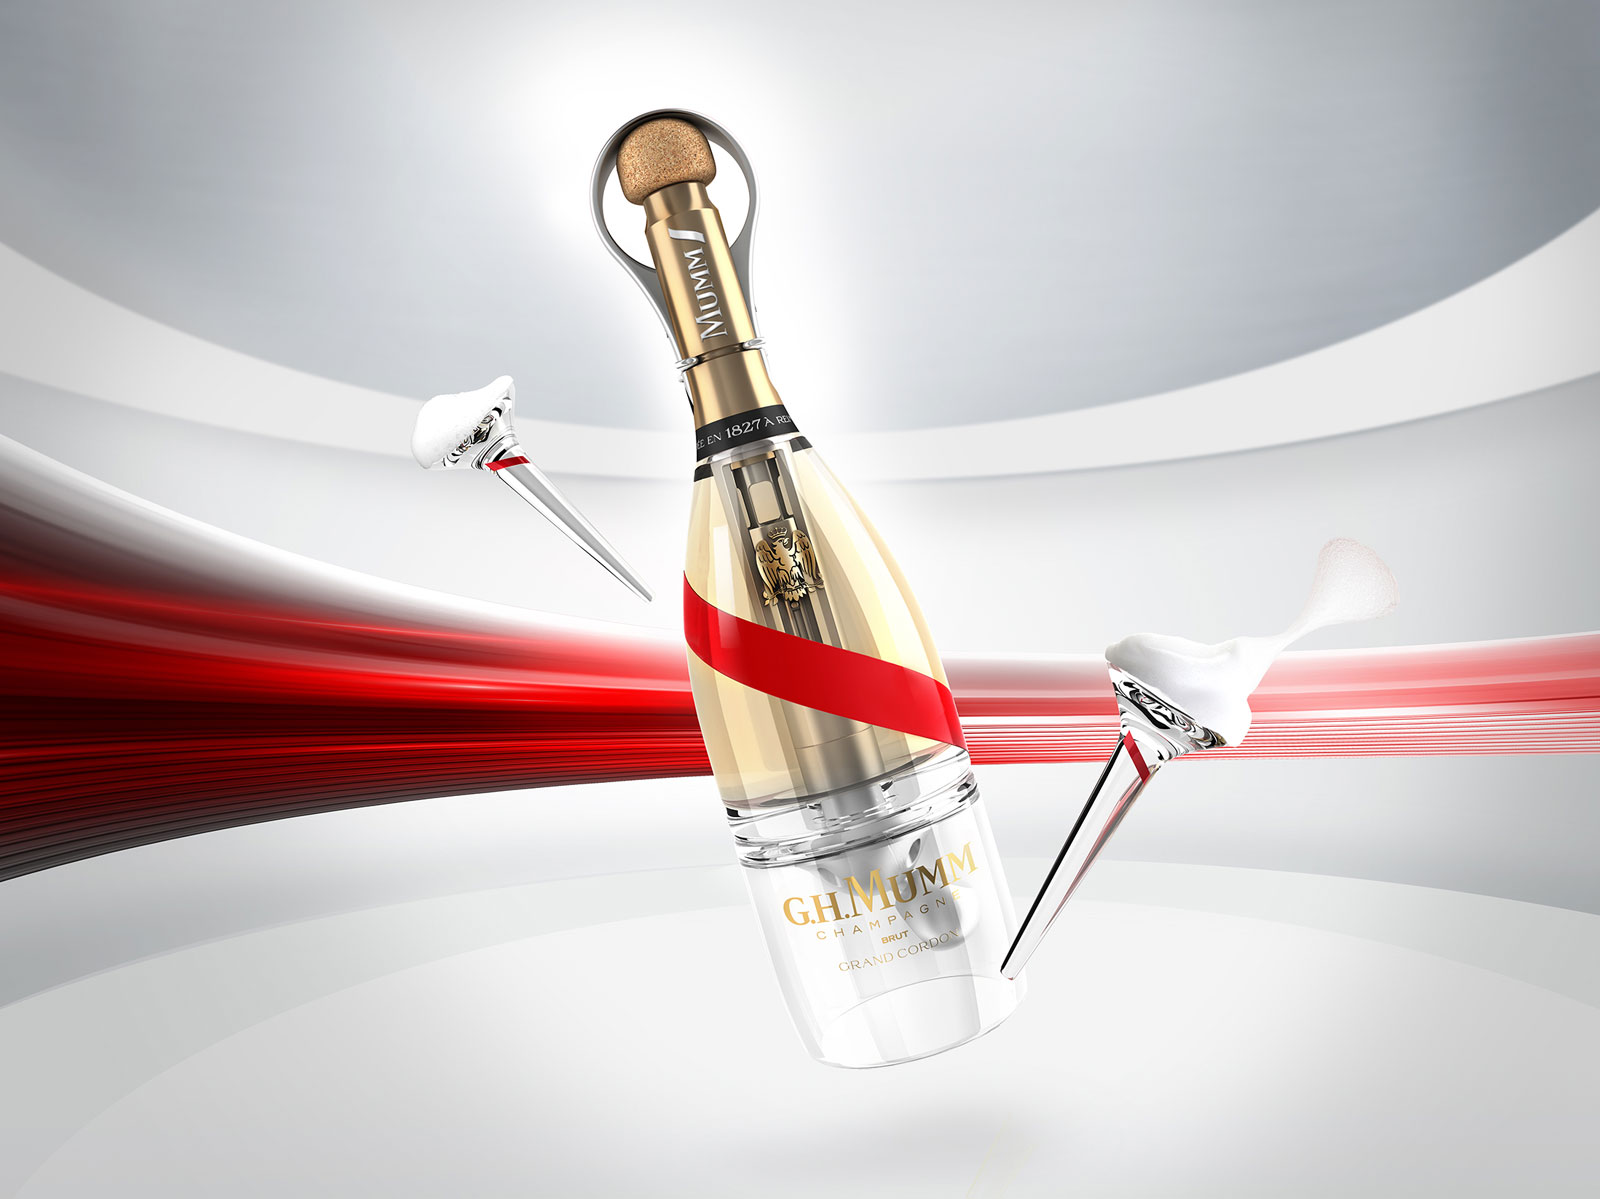 mumm-space-champagne-FT-BLOG0618.jpg